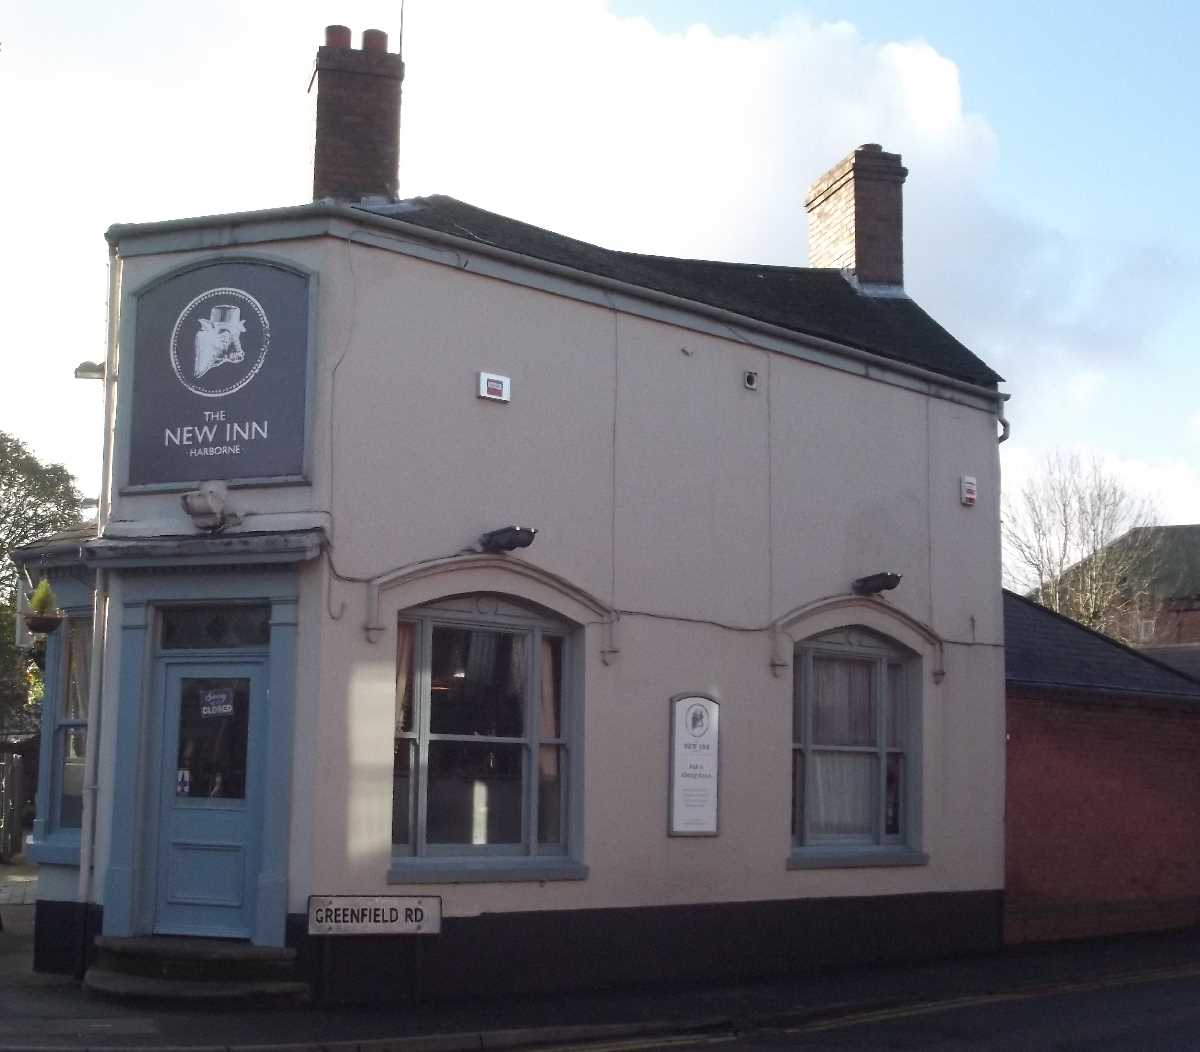 The New Inn Harborne